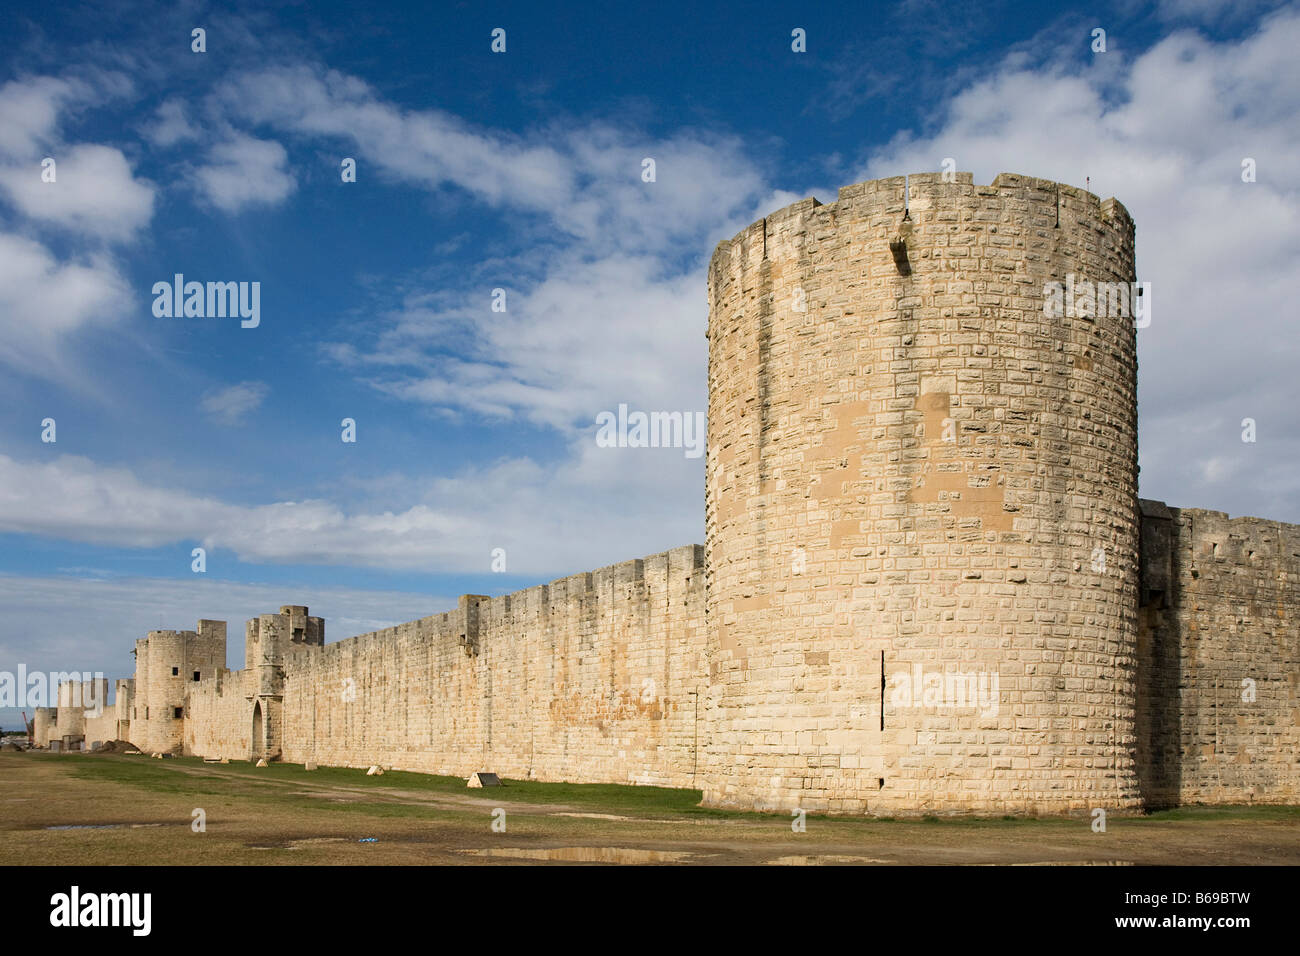 City Wall Aigues Mortes Camargue France Europe - Stock Image